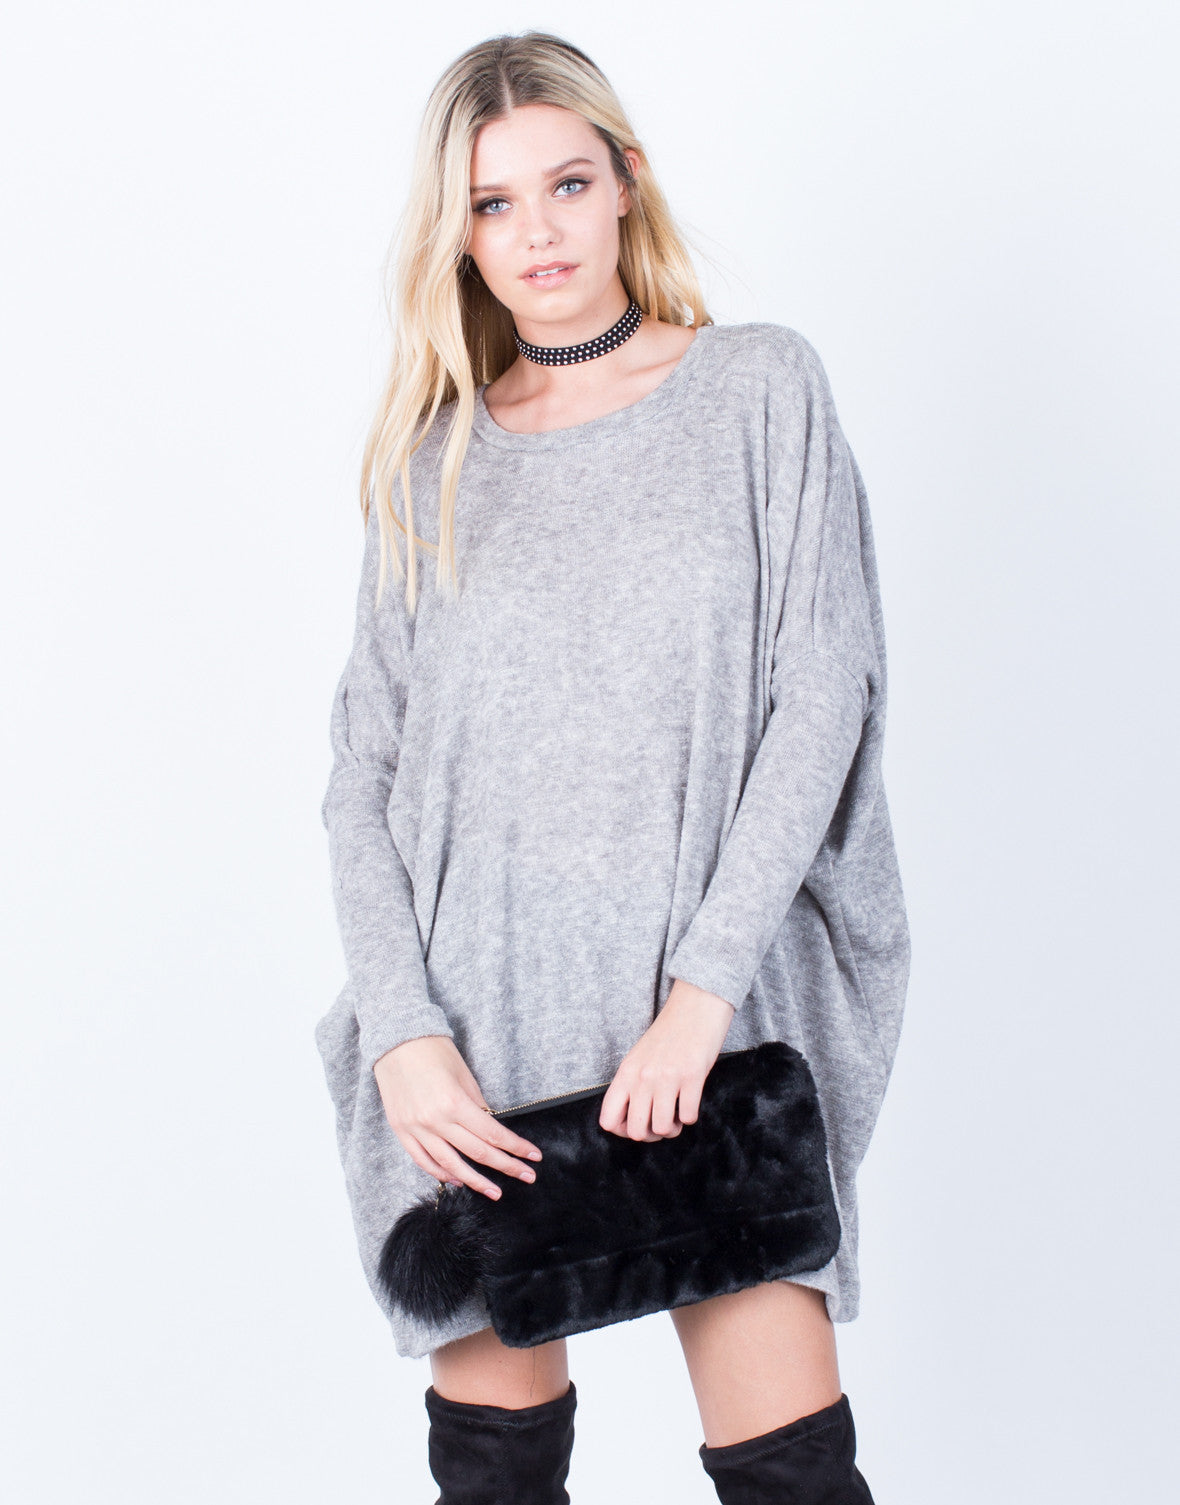 Fuzzy Sweater Tunic Dress - Soft Oversized Sweater - Long Sleeve ...